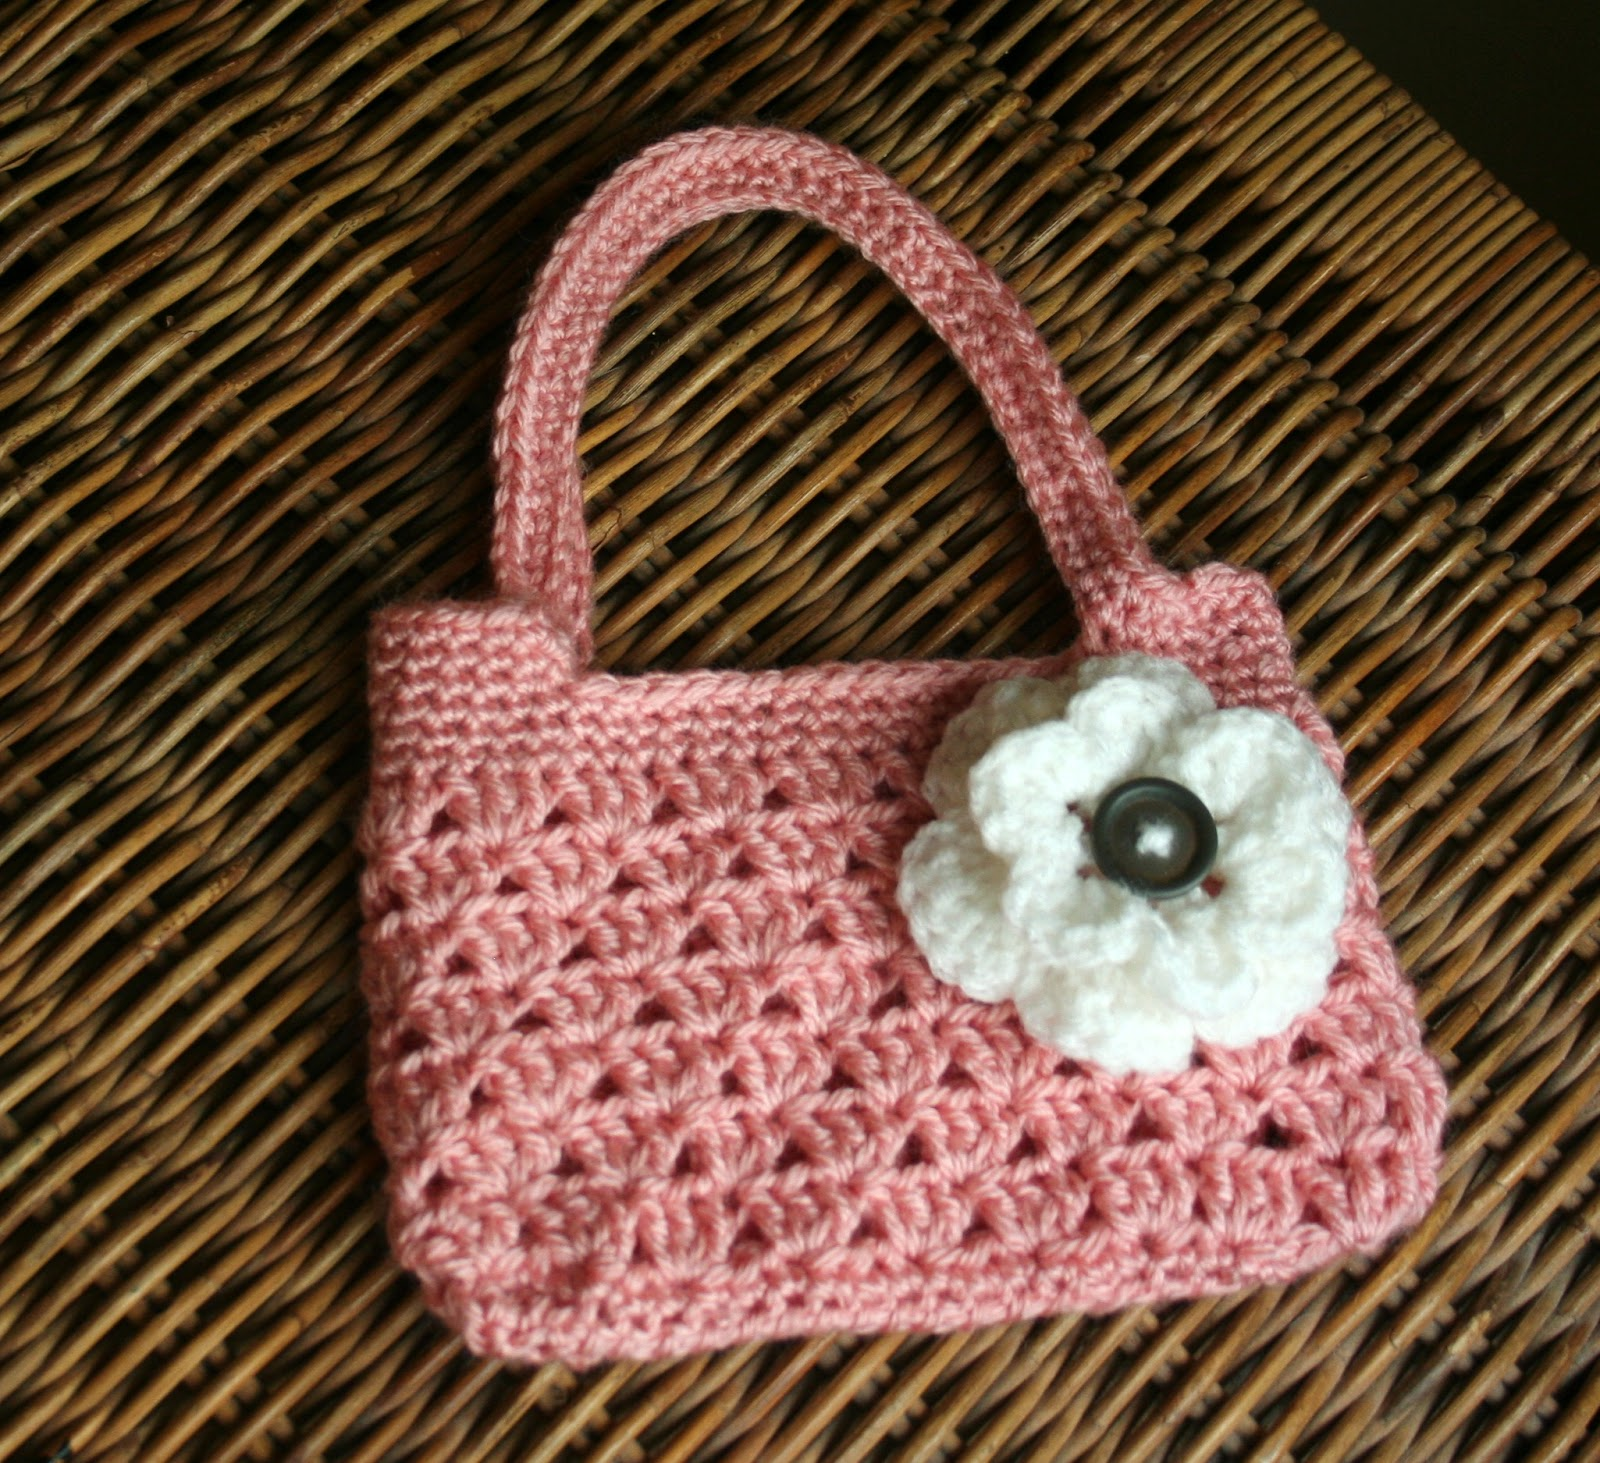 Crochet Purse Ideas : Lilac Shoulder Bag Crochet Pattern - Free crochet patterns over